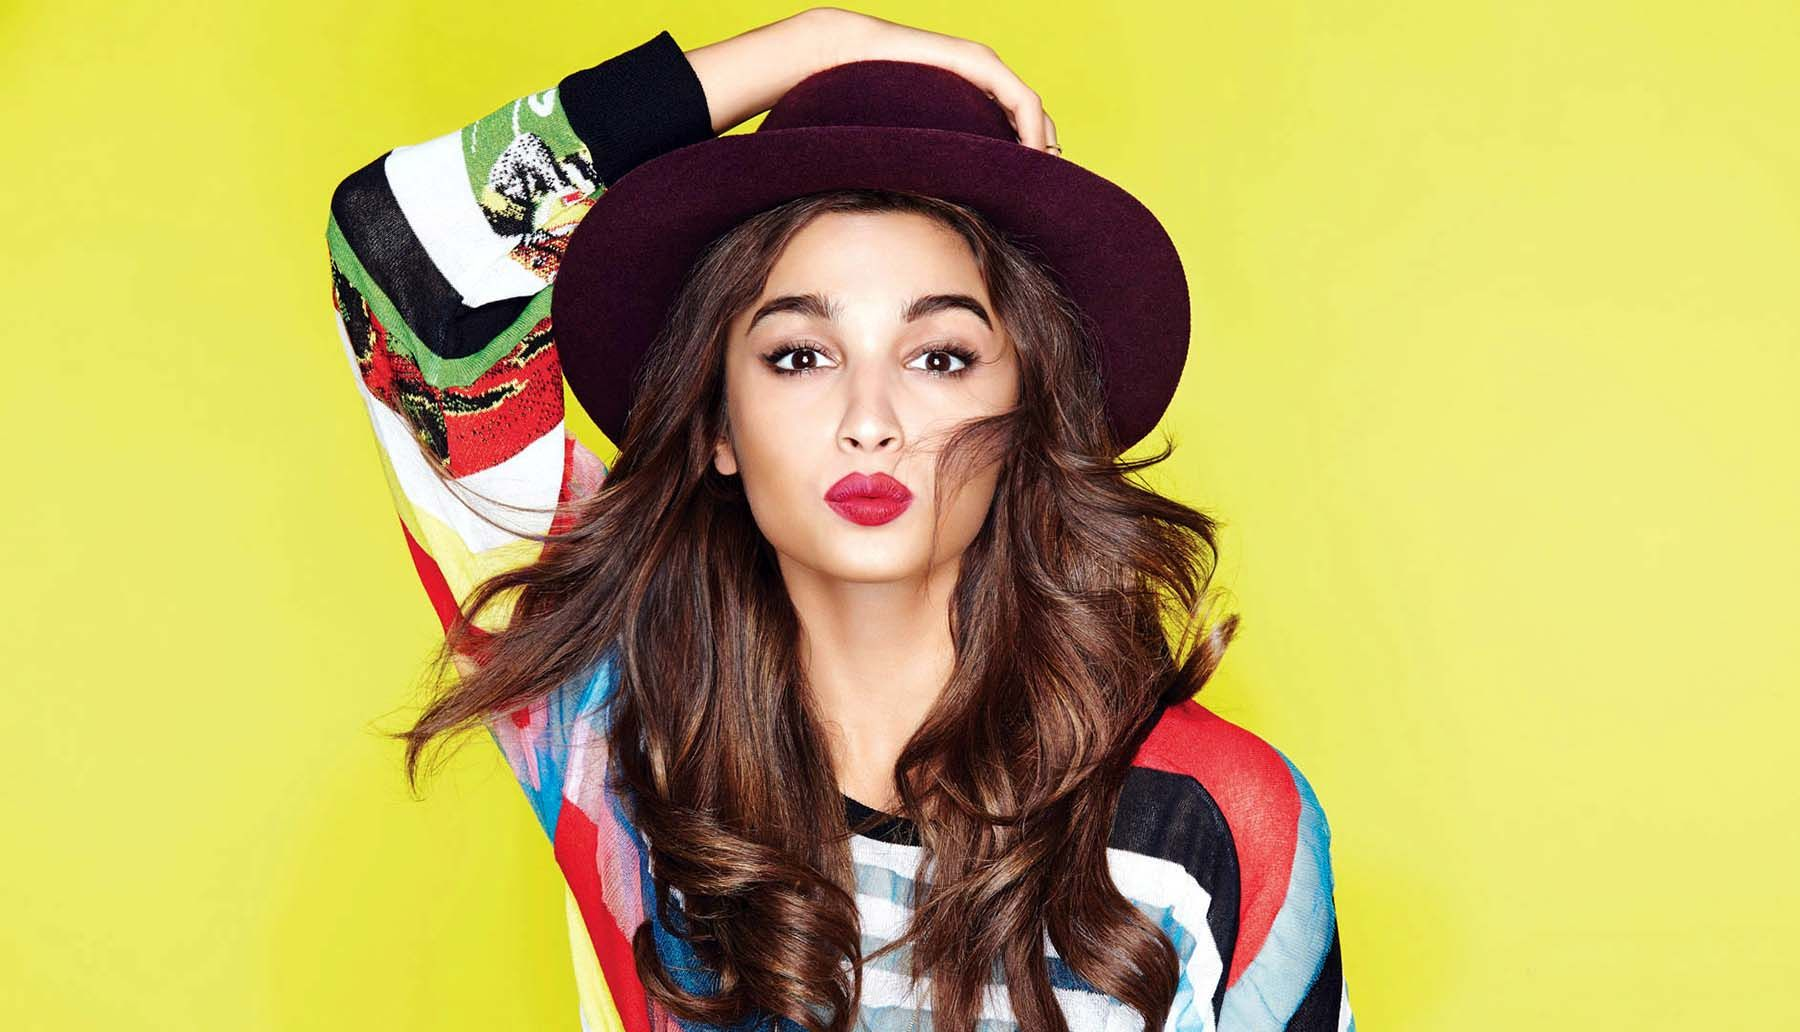 Lops mobili ~ Alia bhatt new wallpapers ultra hd 4k images wallpapers ultra hd